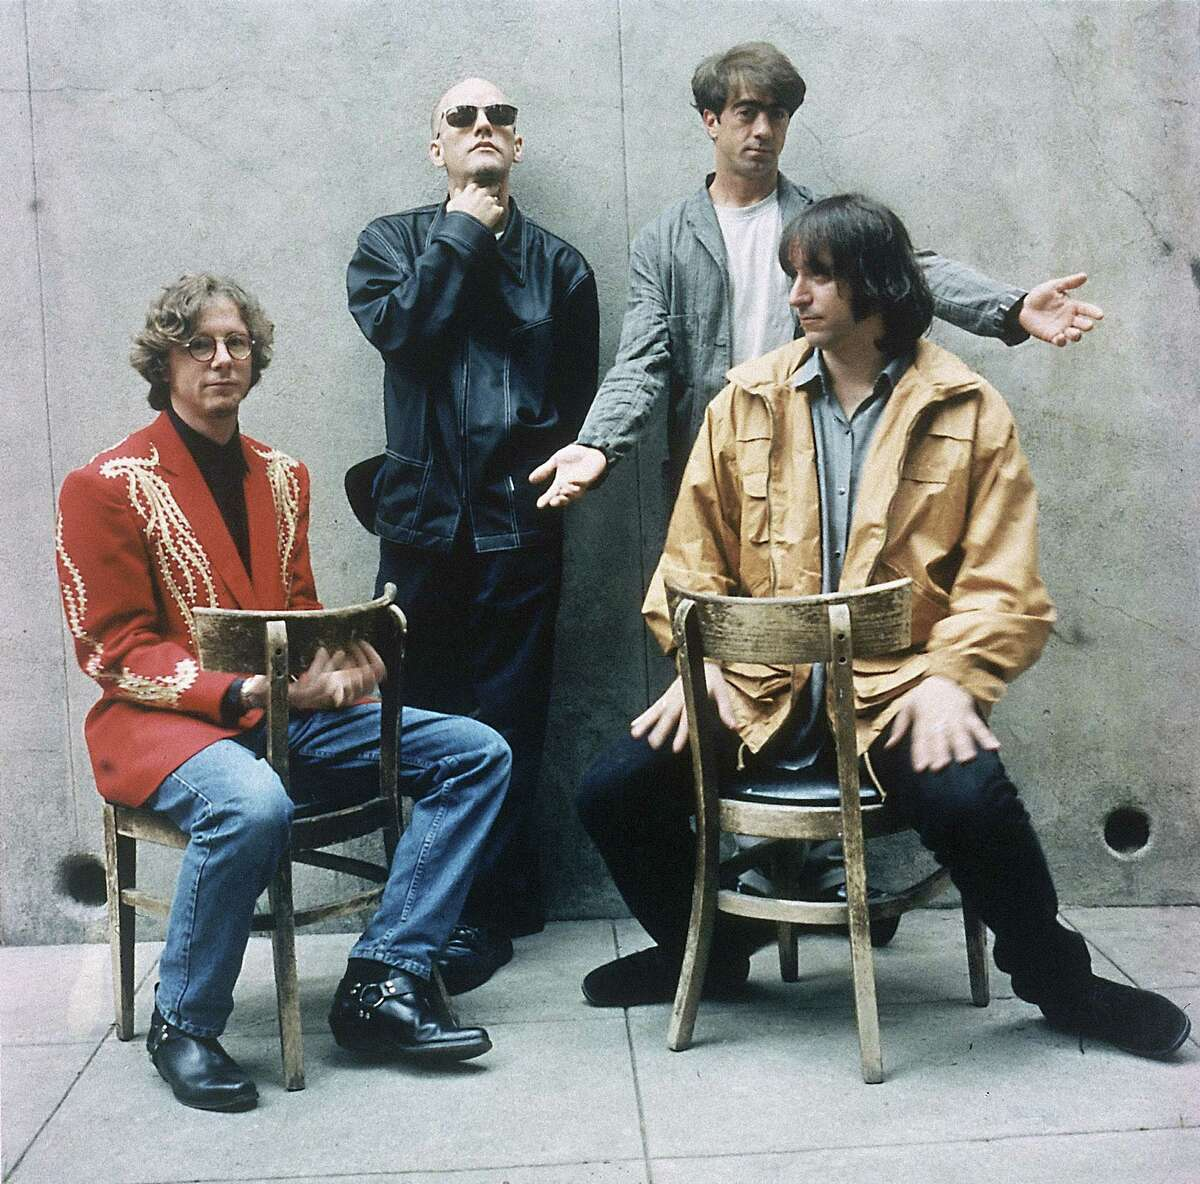 Mike Mills, Michael Stipe, Bill Berry and Peter Buck of R.E.M. brought